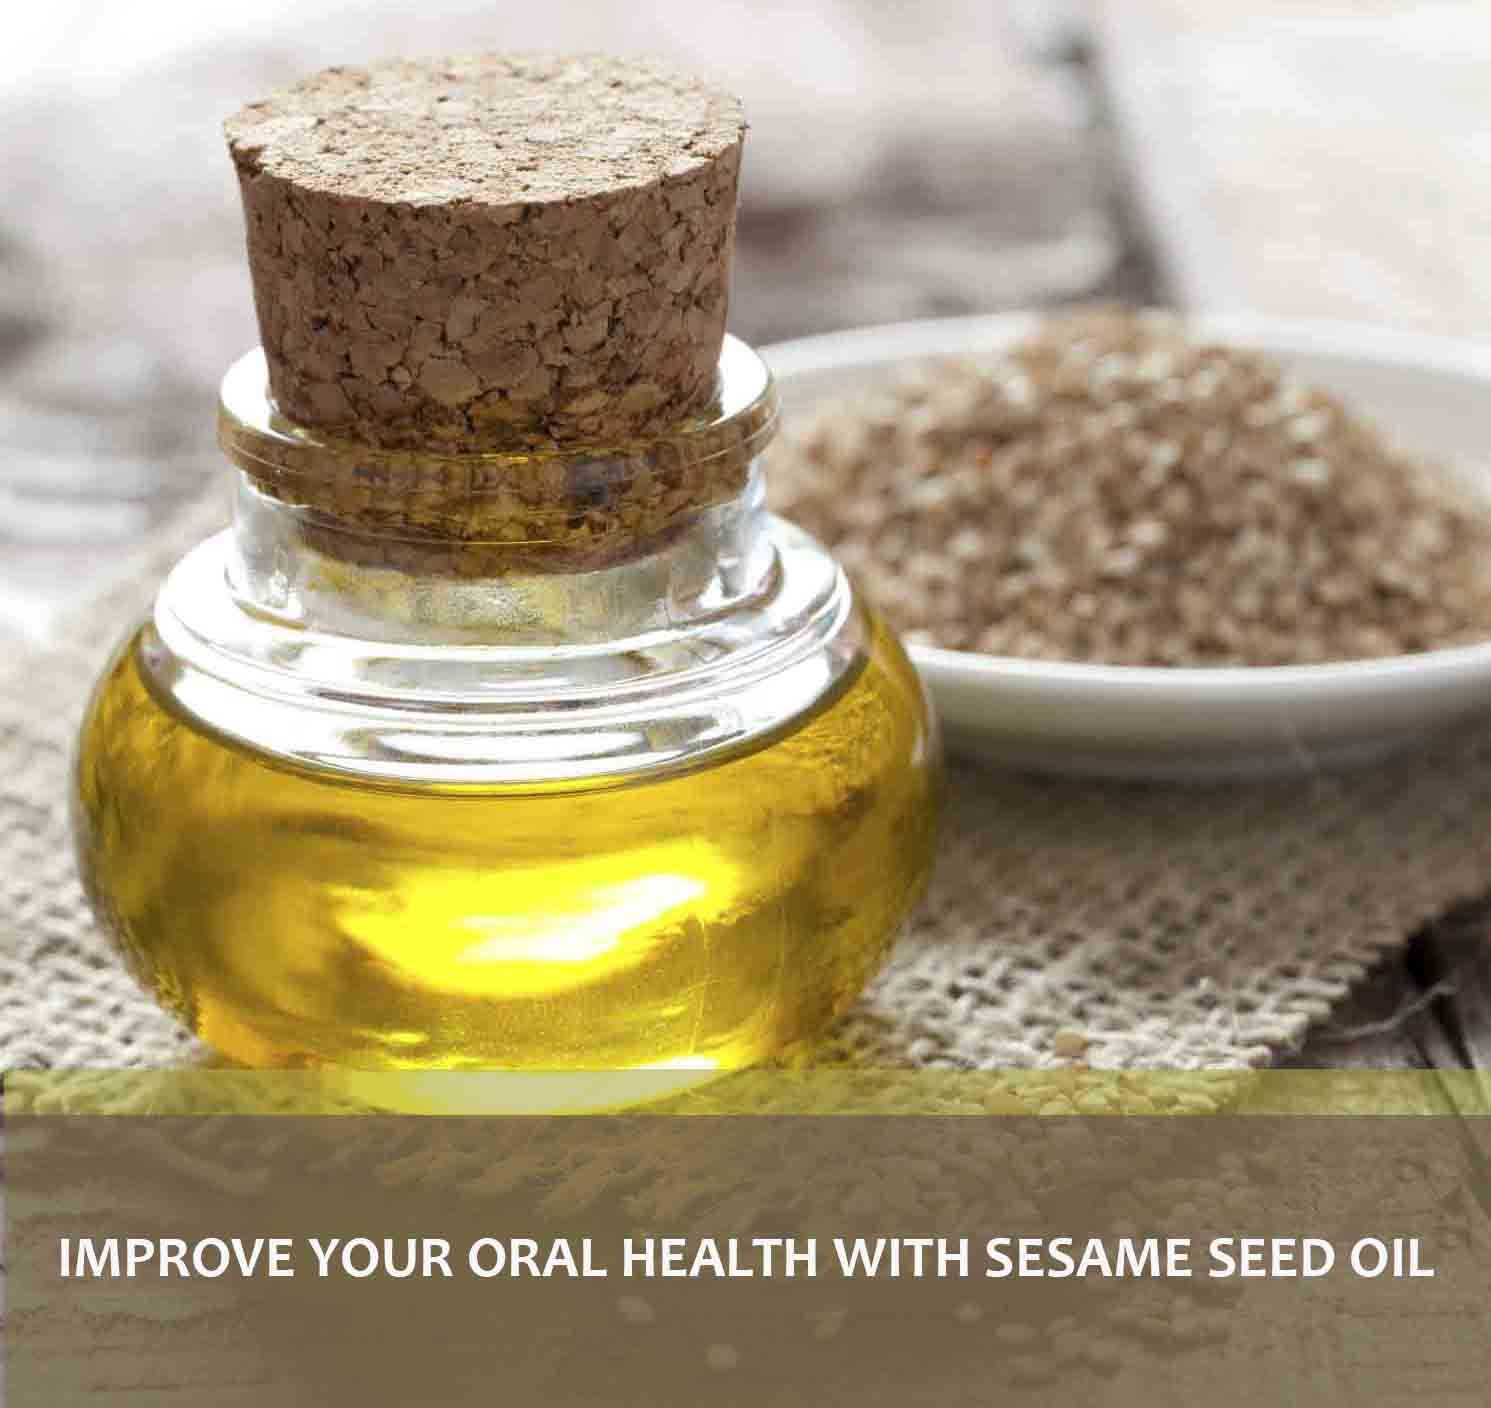 Massage your gums and rinse with sesame oil to improve